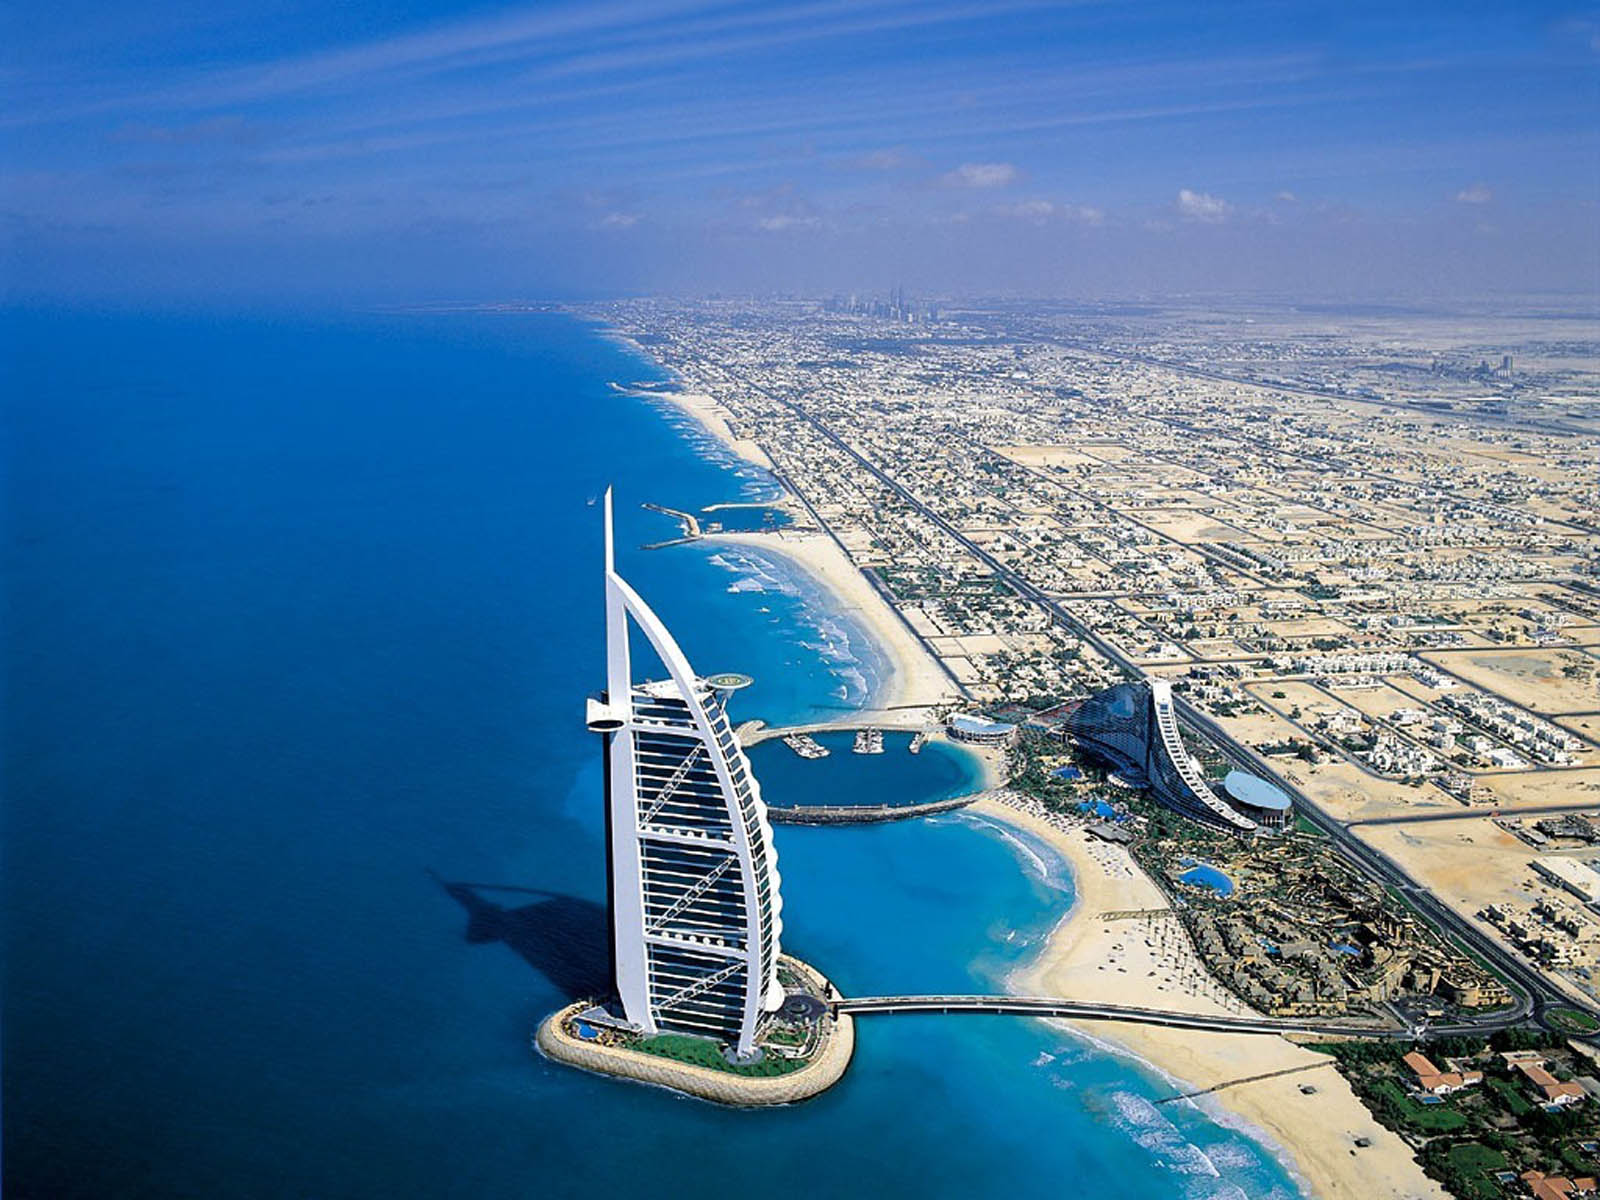 Dubai Wallpapers Backgrounds Photos Images and Pictures for 1600x1200